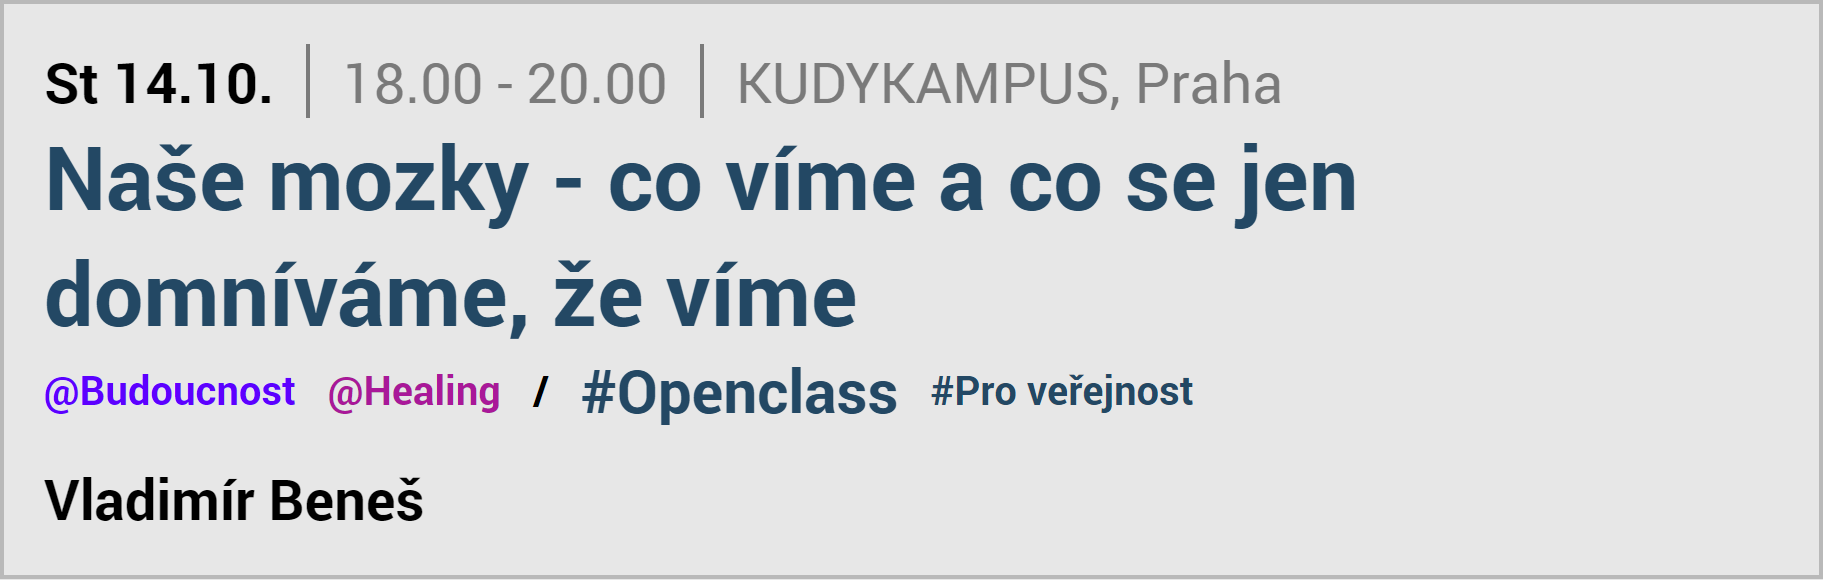 OPENCLASS event